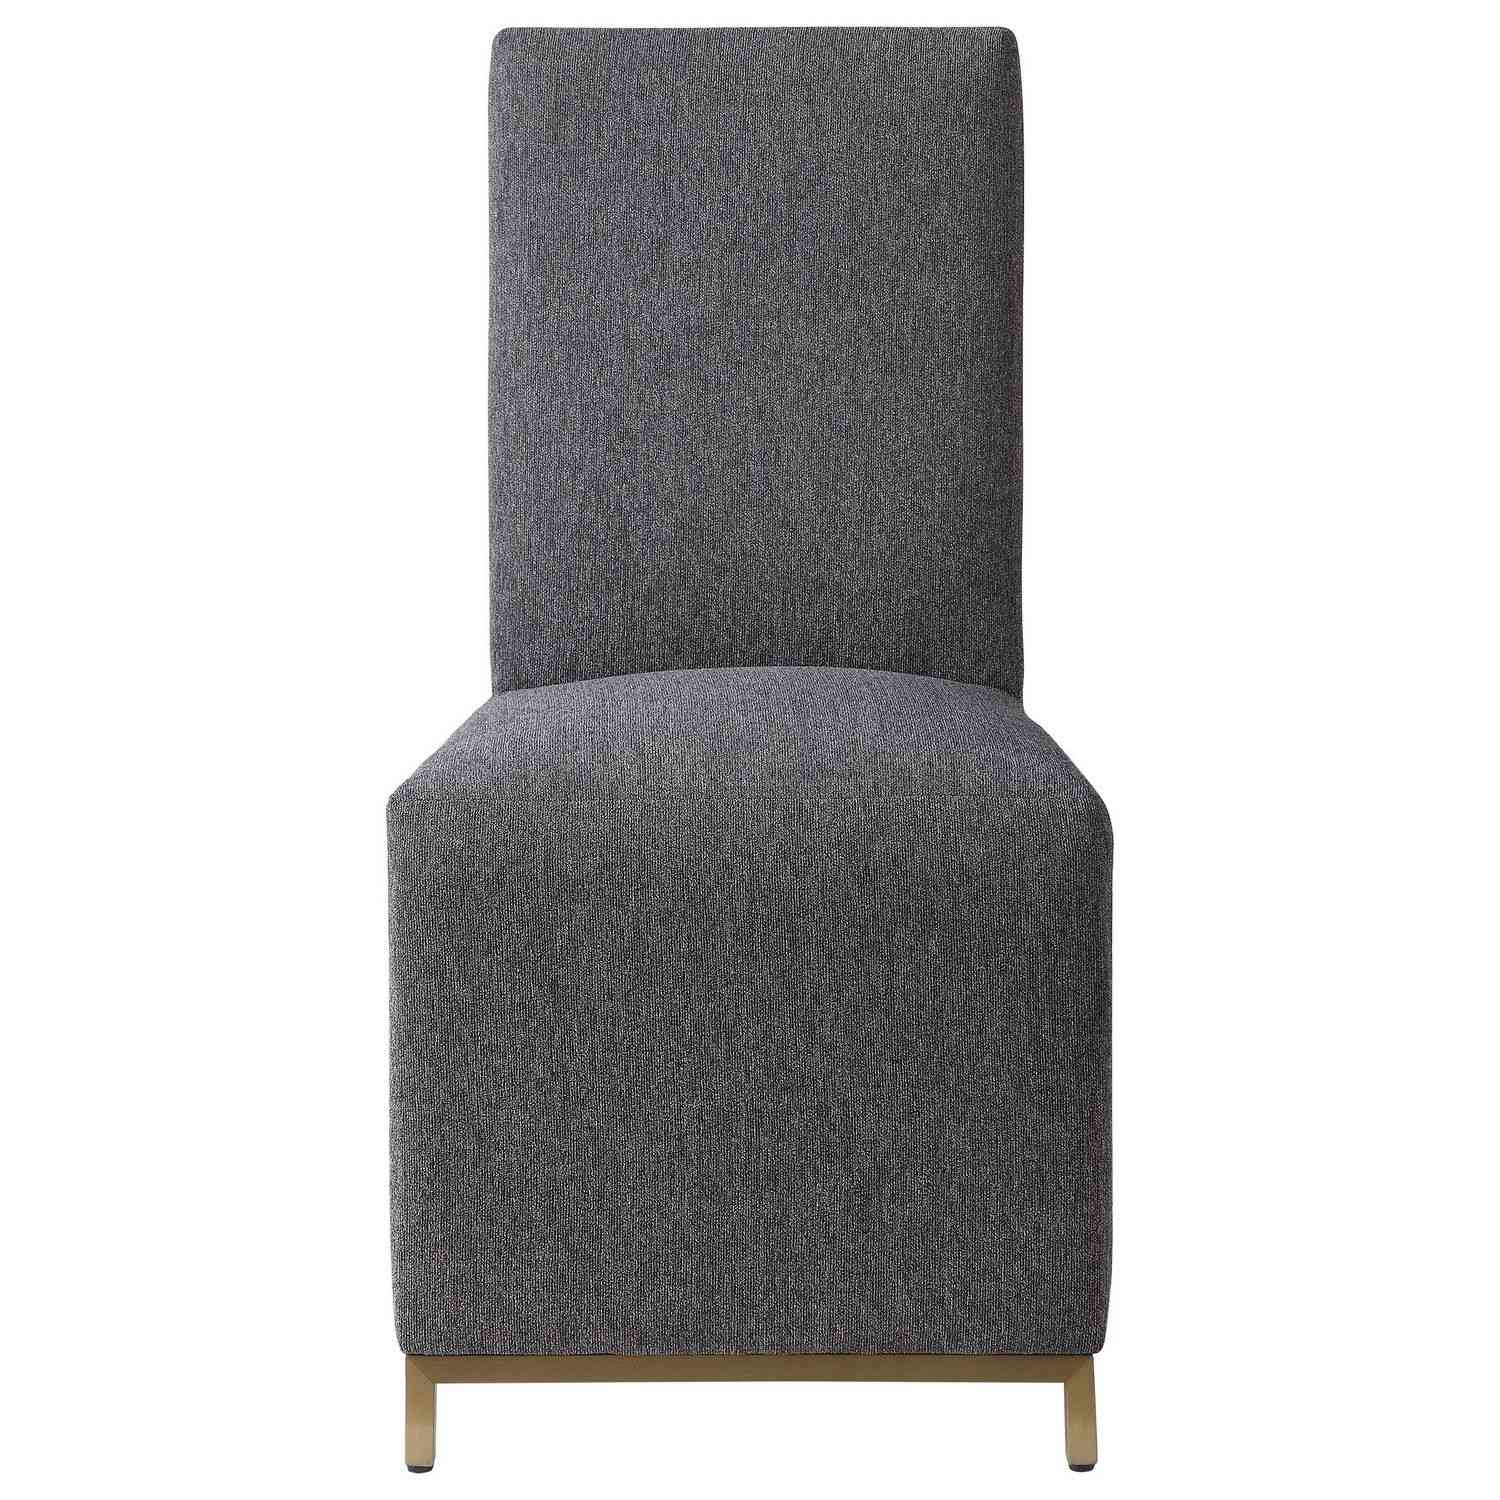 Uttermost Gerard Armless Chairs - Set of 2